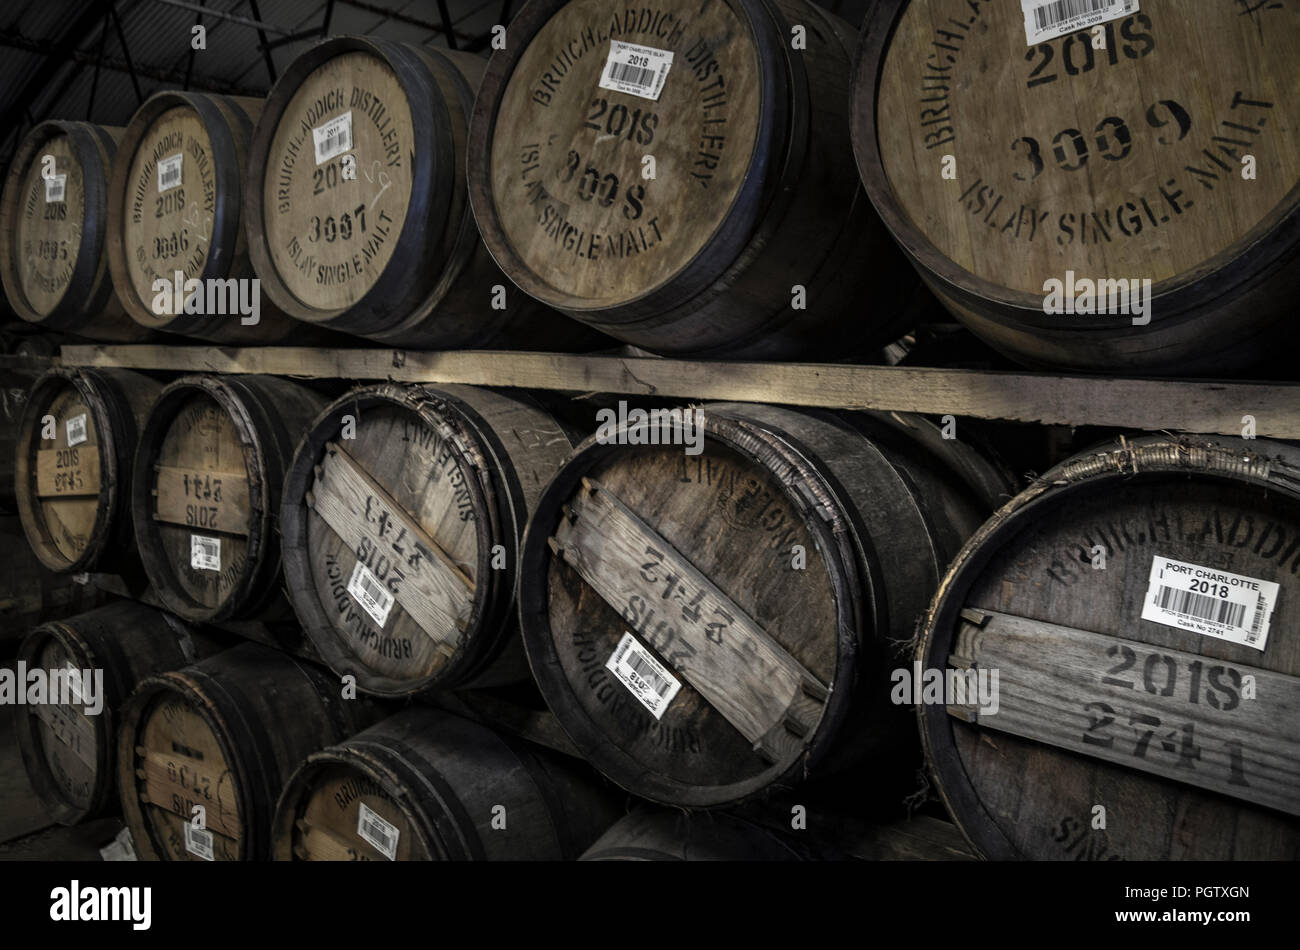 Barrels of Whisky Maturing in a Warehouse, Bruichladdich, Islay - Stock Image